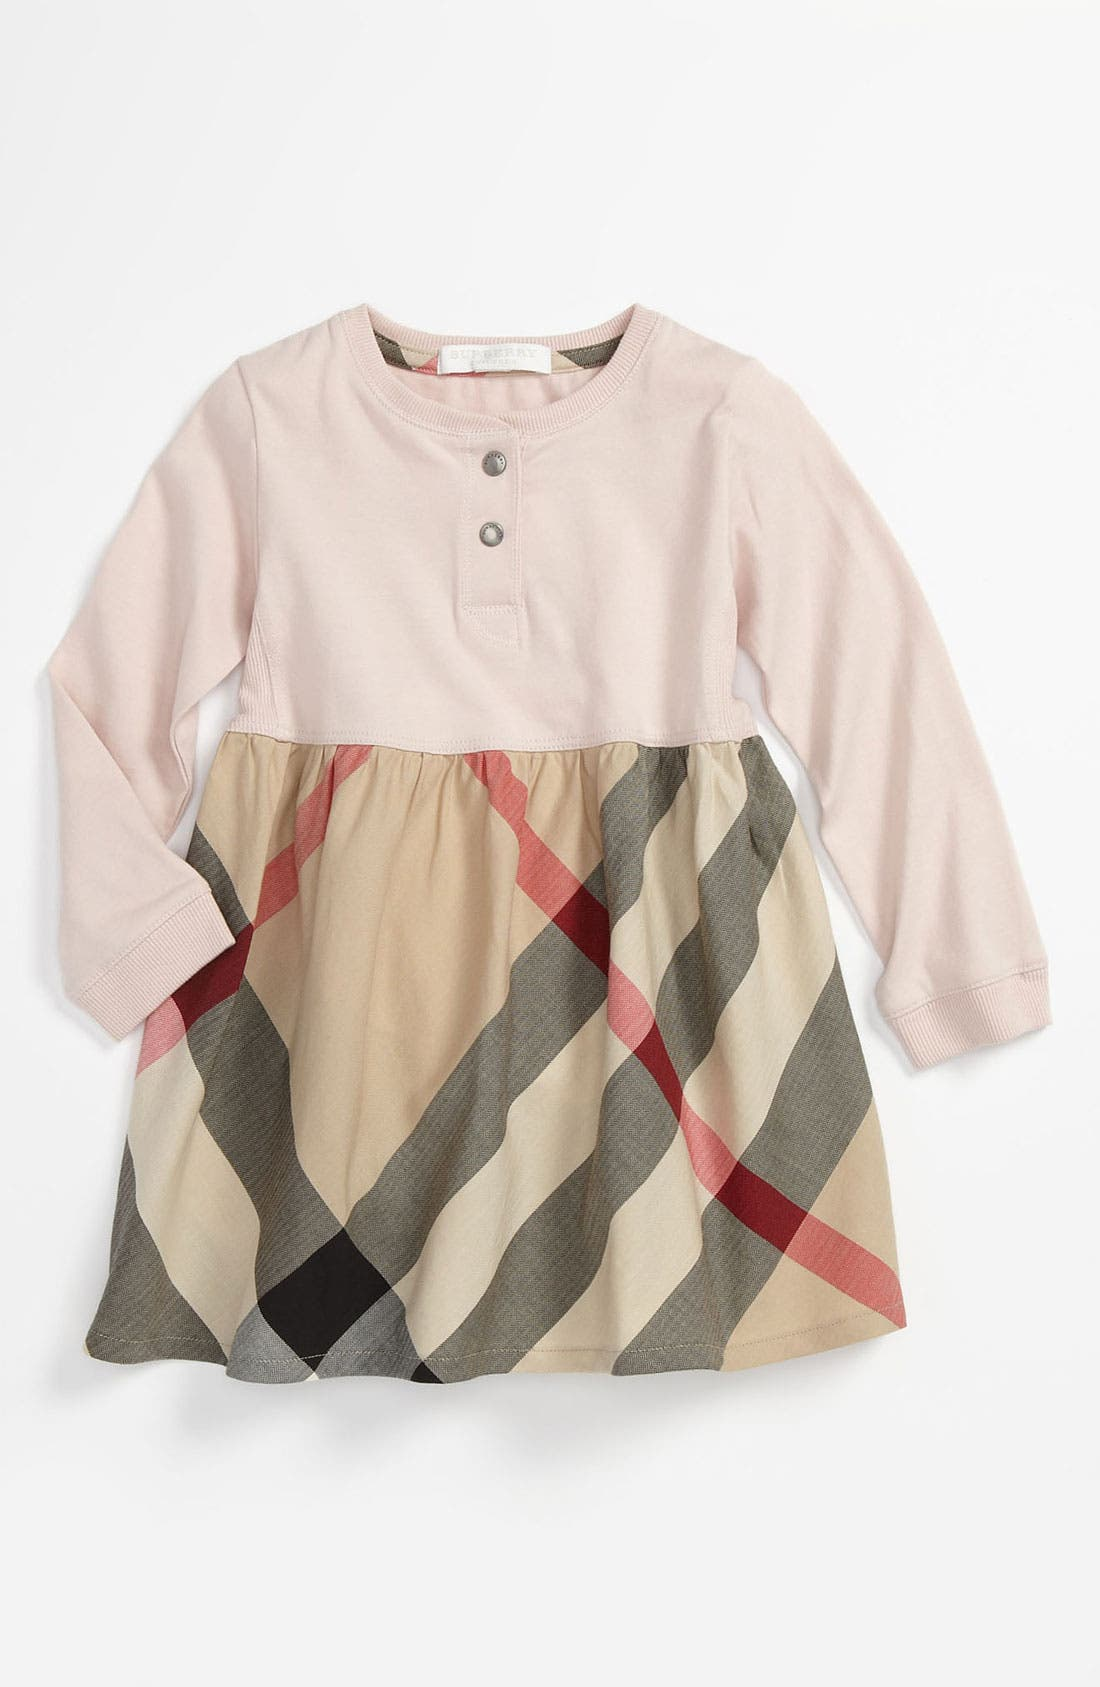 Alternate Image 1 Selected - Burberry Knit & Woven Dress (Infant)